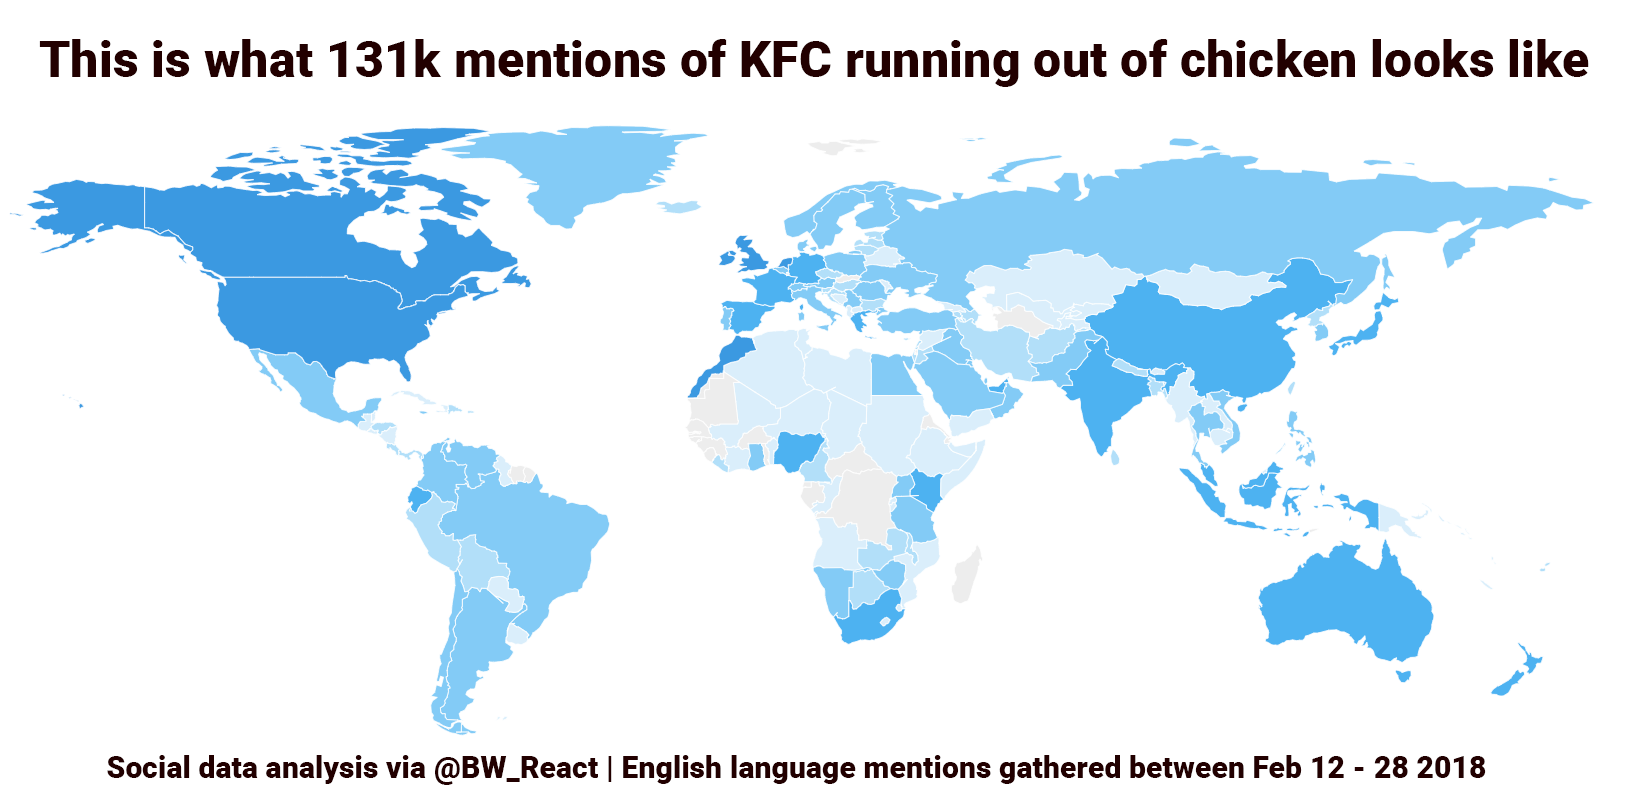 A map of the world shows countries lighting up with mentions of KFC running out of chicken. UK and US are particularly strongly colored.